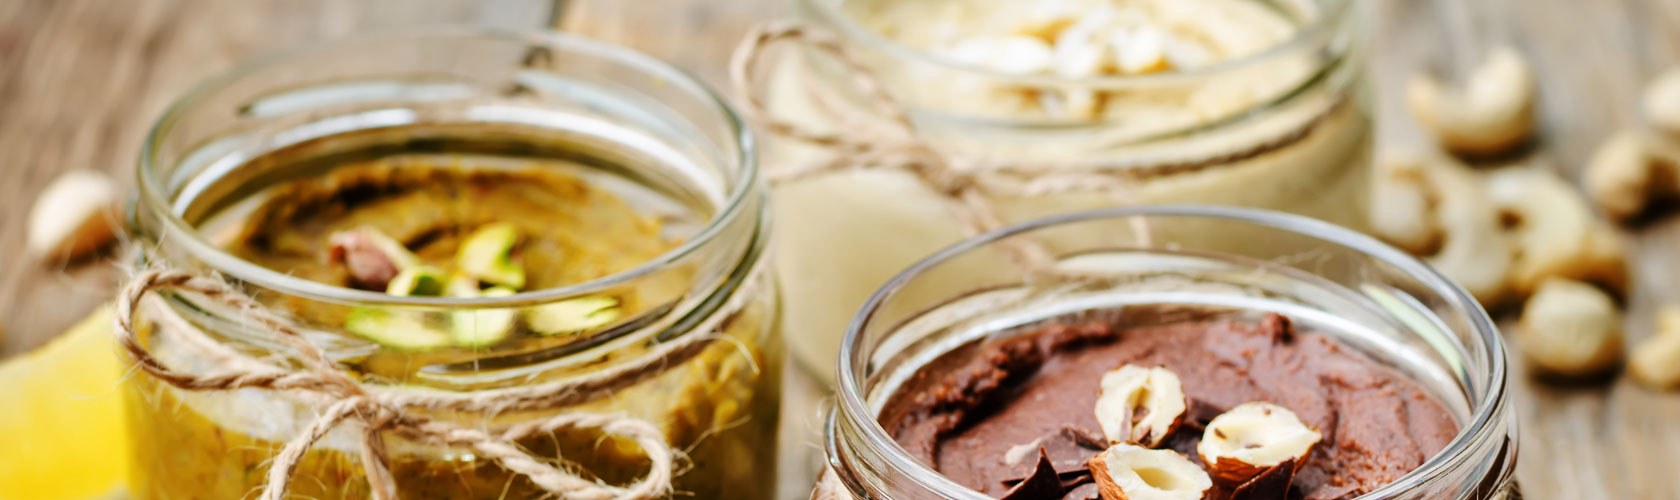 Nut Butters Sampling Solutions